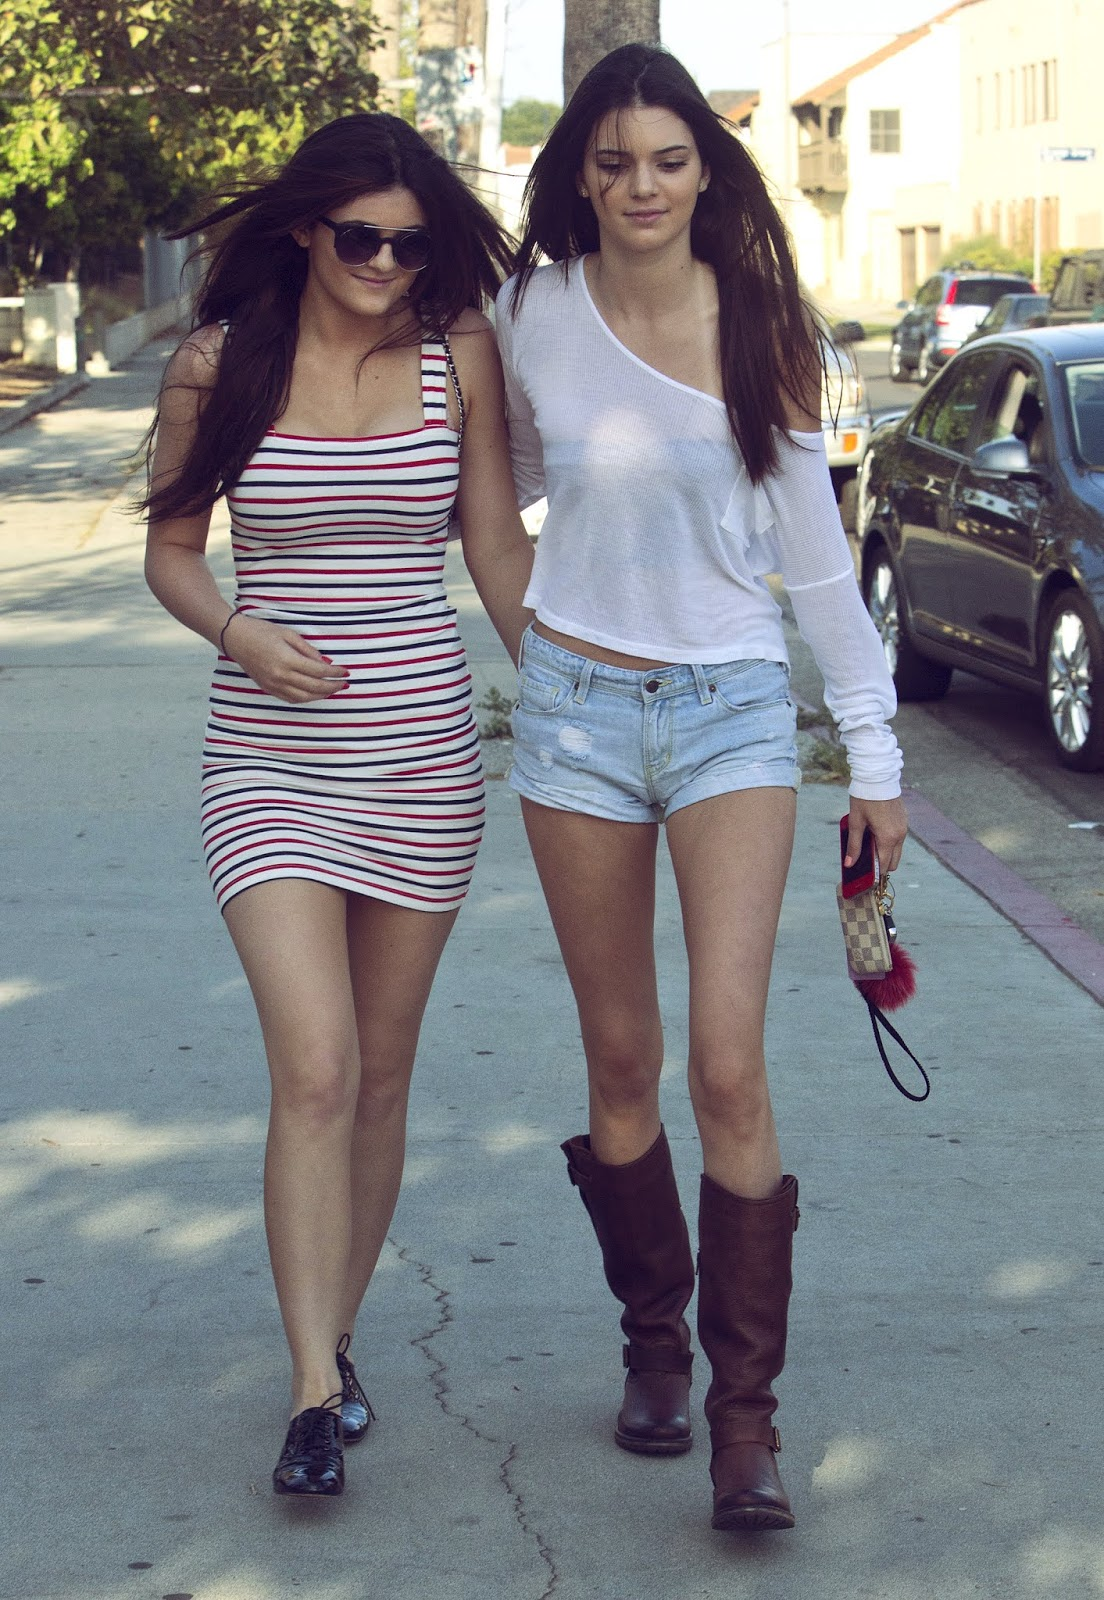 03 - Out and About with Kylie Jenner in Hollywood California on June 16, 2012